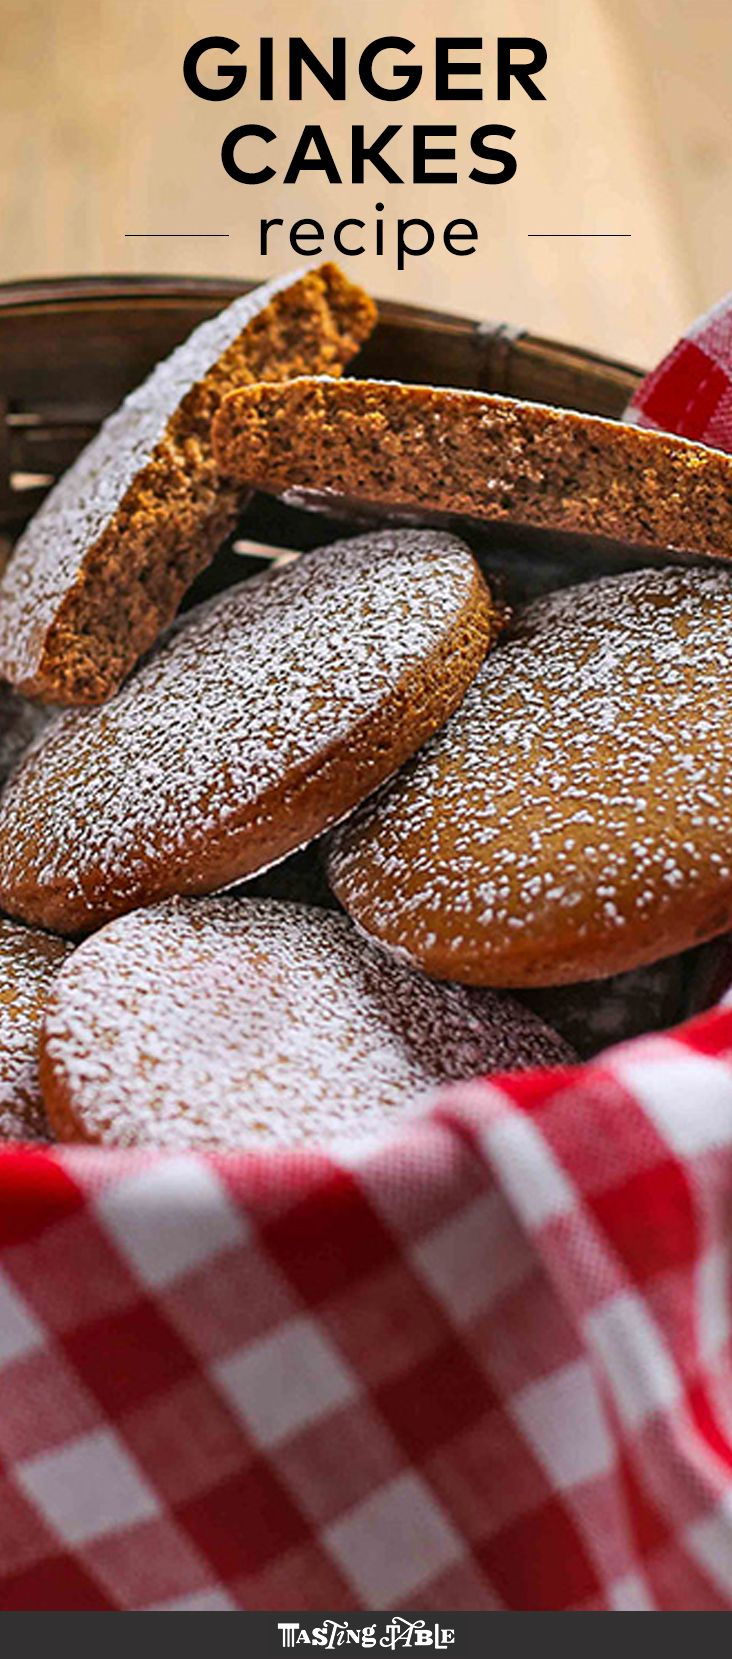 Learn how to make puffy, fragrant ginger cakes just like the ones sold in…